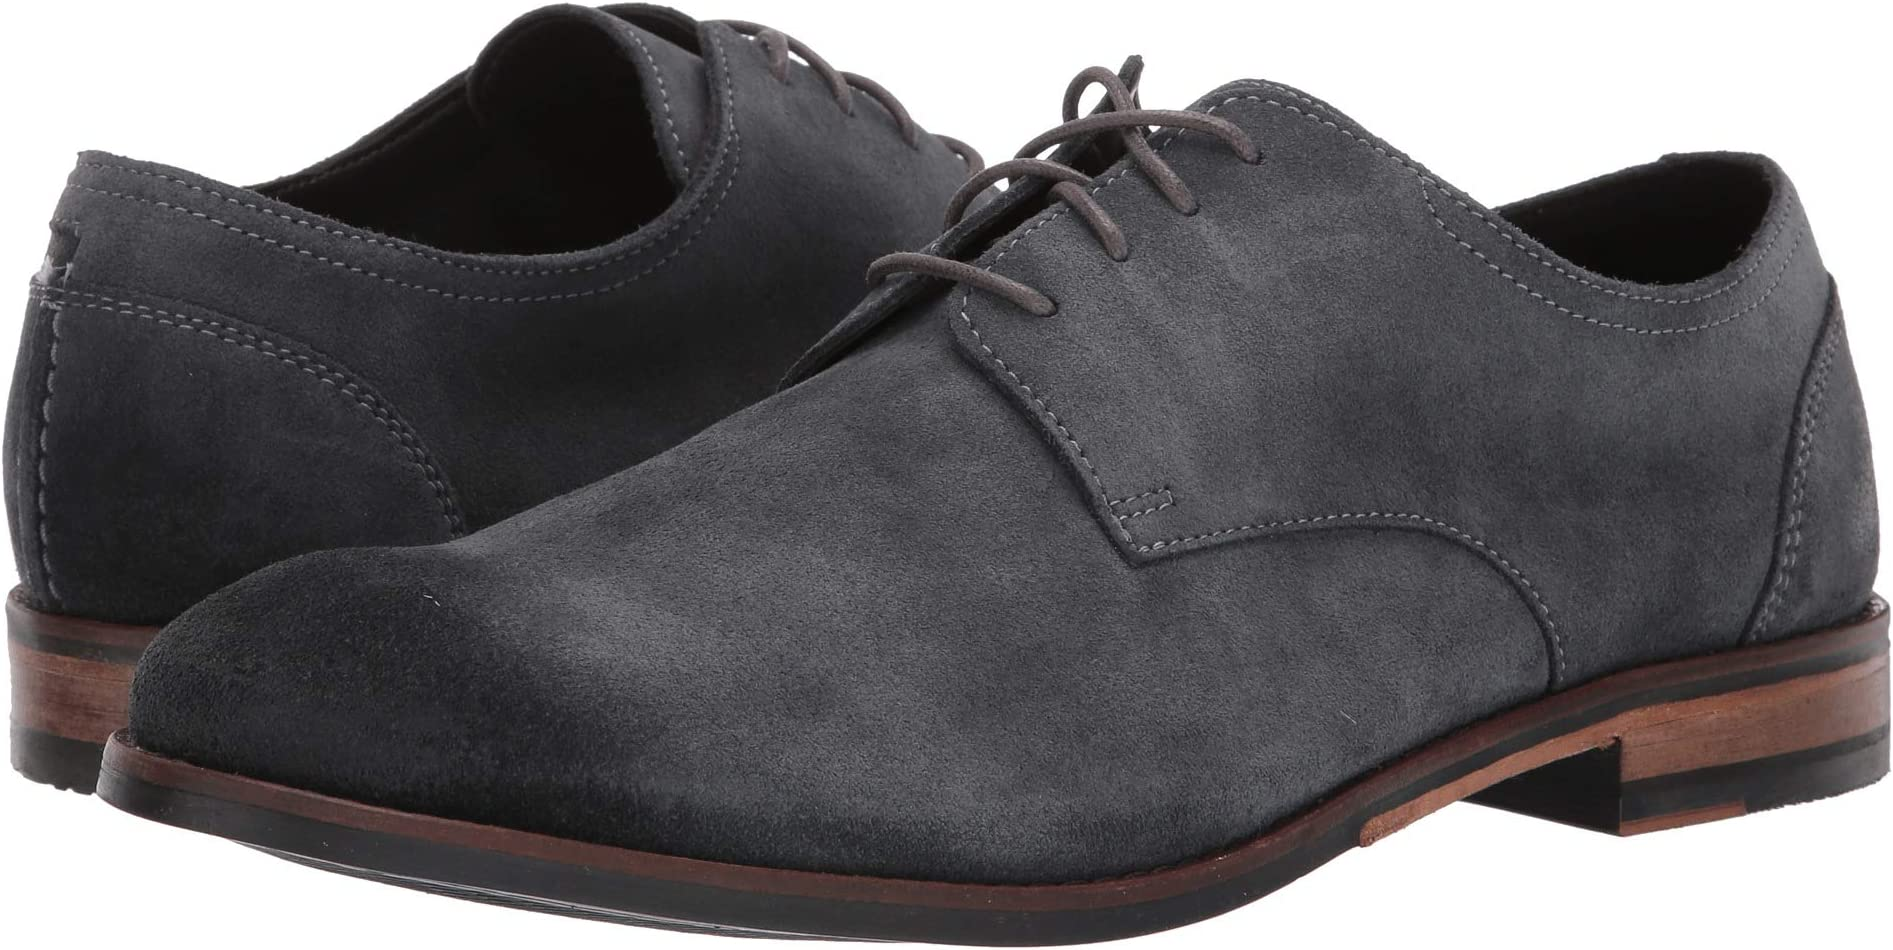 d5afdedb2 Clarks Shoes, Boots, Loafers, Sneakers & Heels | Zappos.com